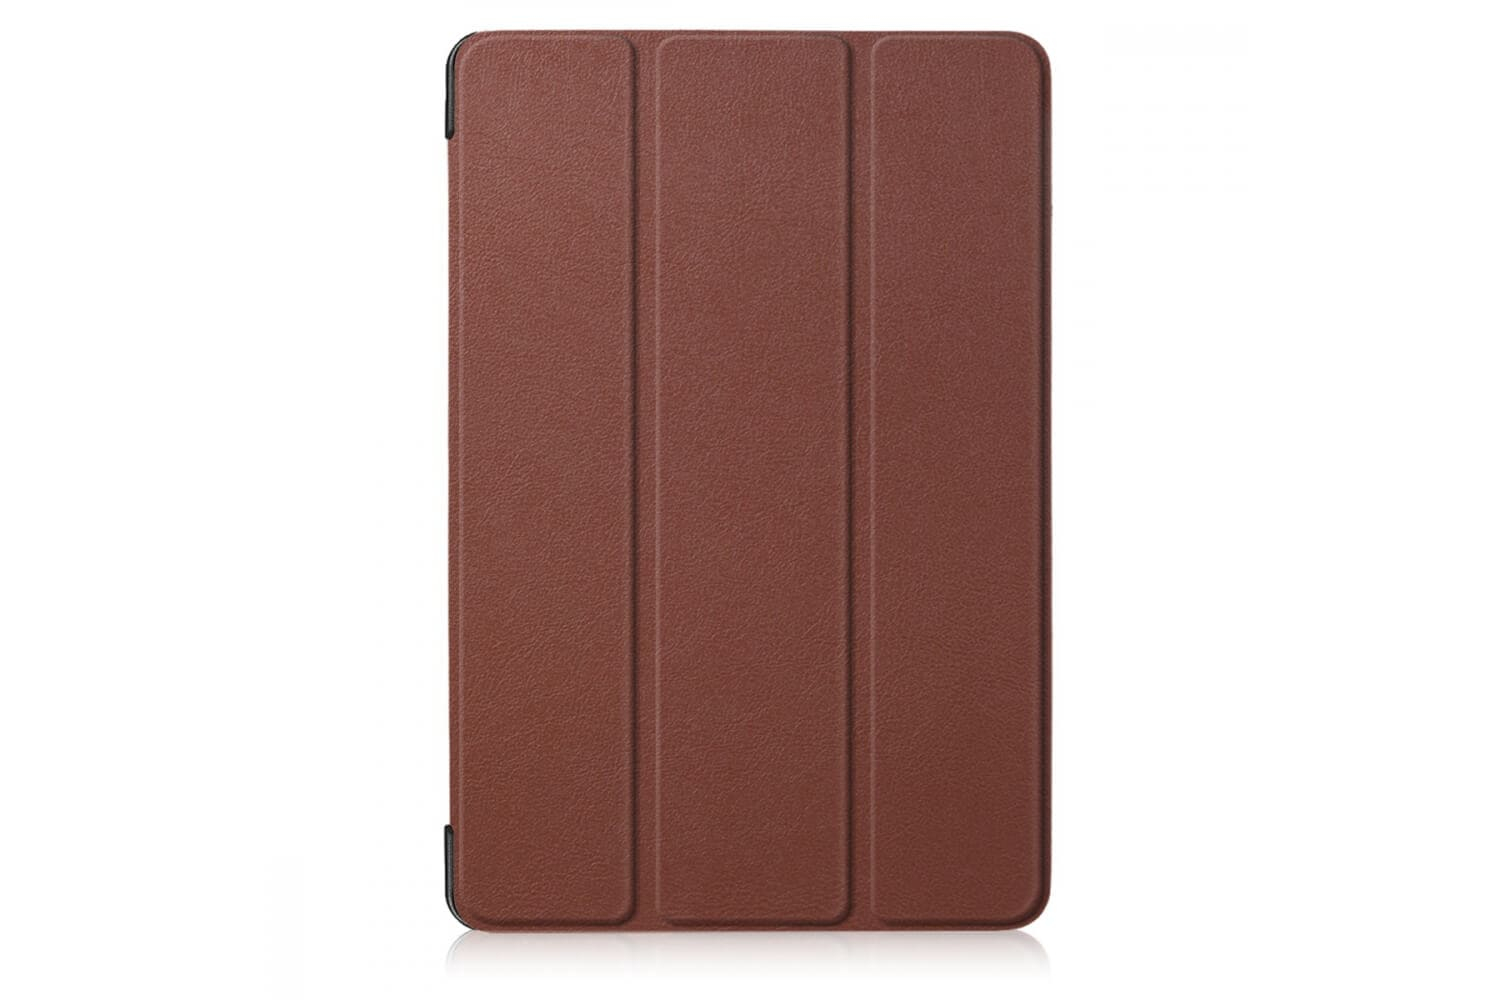 samsung galaxy tab a 10.5 book cover case brown